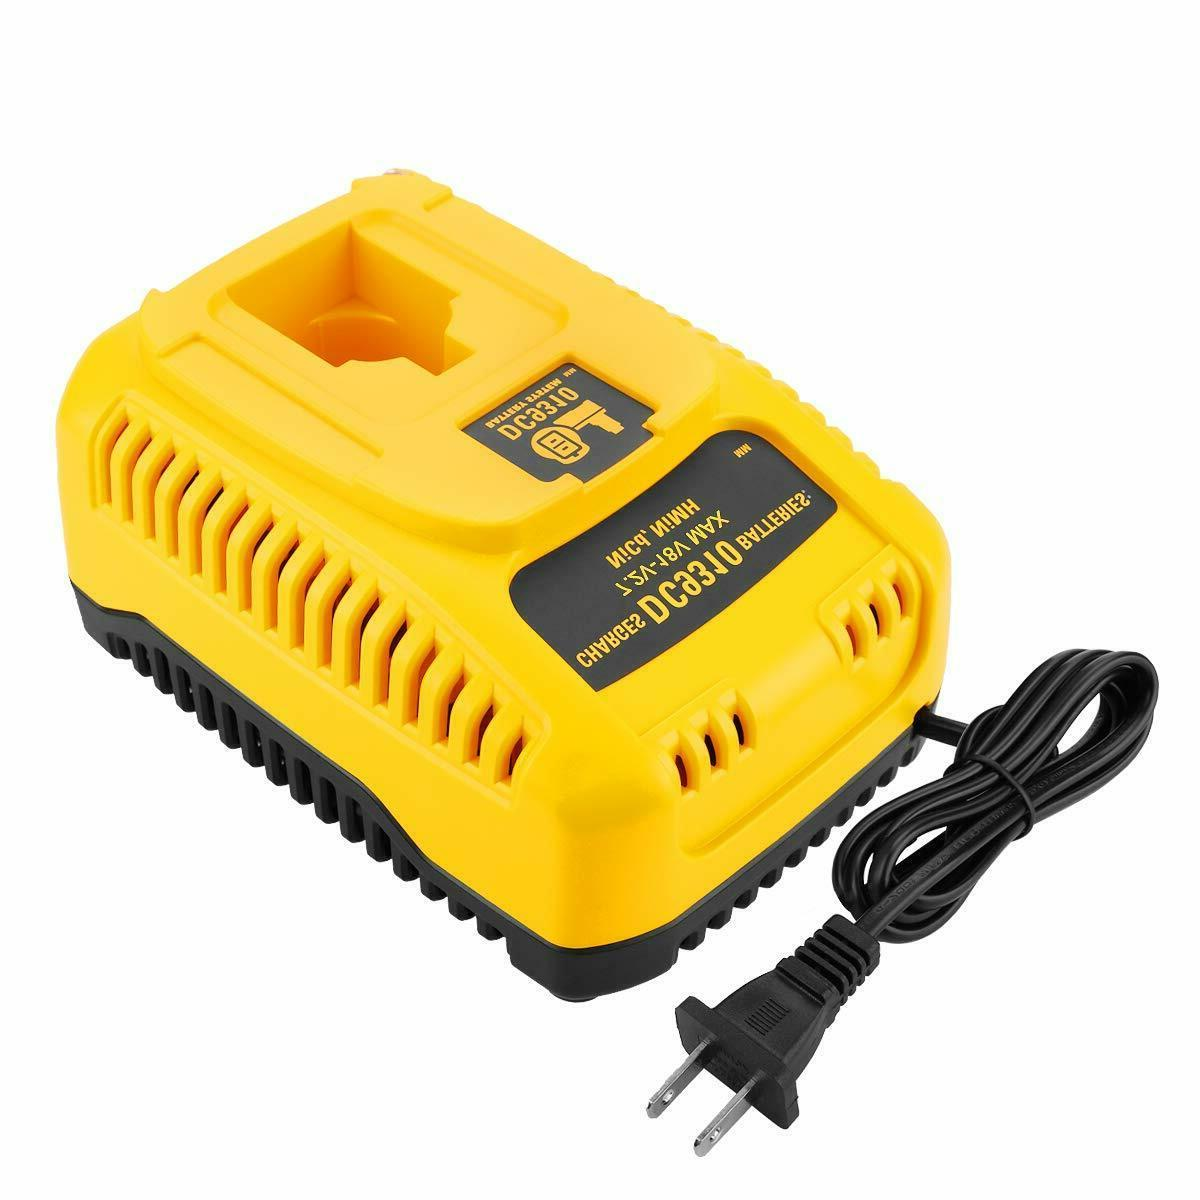 Replacement for 18V XRP Battery and 1x Fast DC9310 Charger